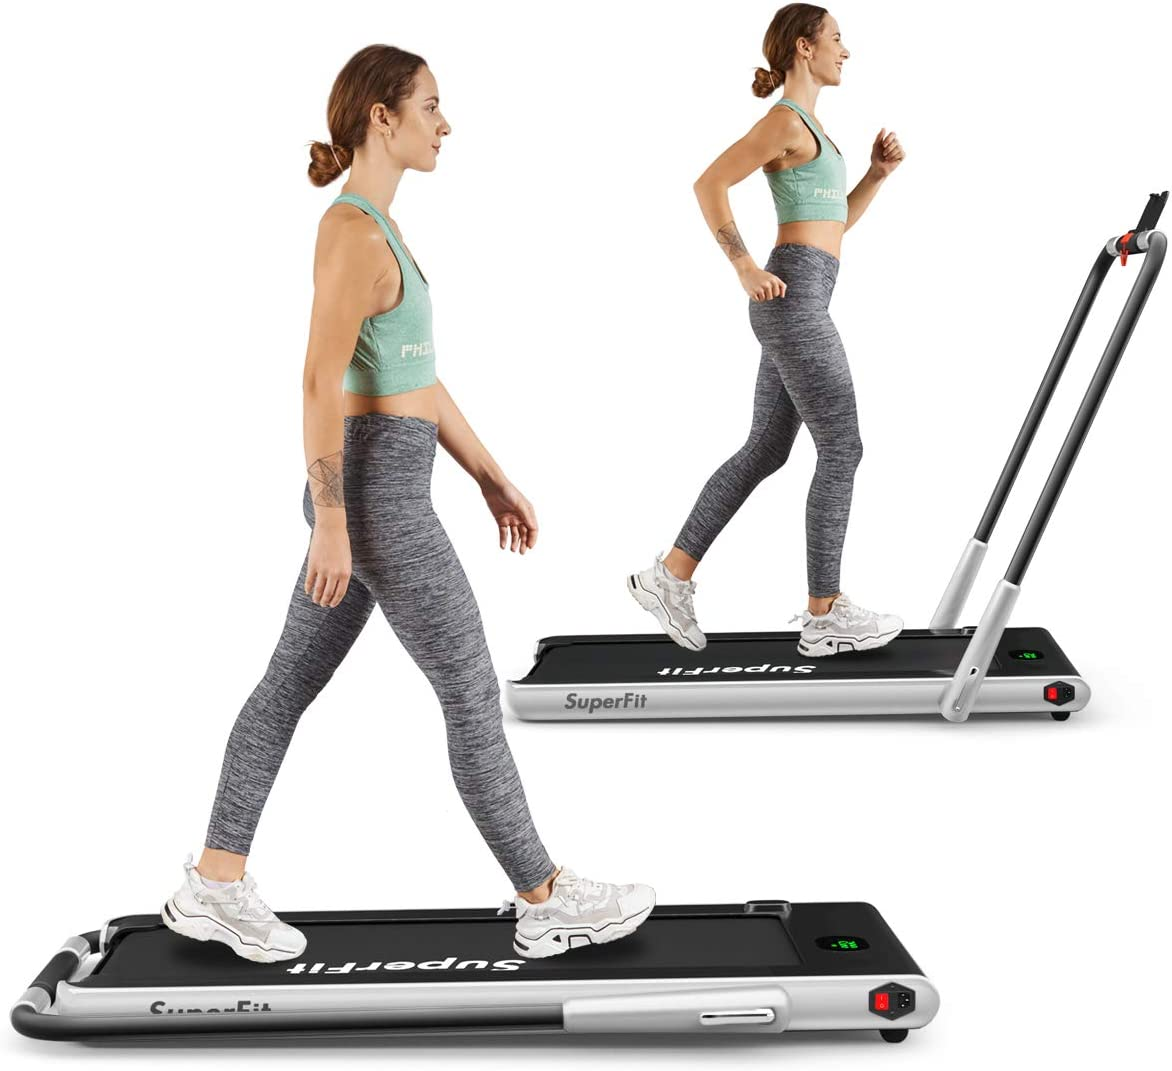 Goplus 2 in 1 Folding Treadmill, 2.25HP Under Desk Electric Treadmill, Installation-Free, with Remote Control, Bluetooth Speaker and LED Display, Walking Jogging Machine for Home Office Use